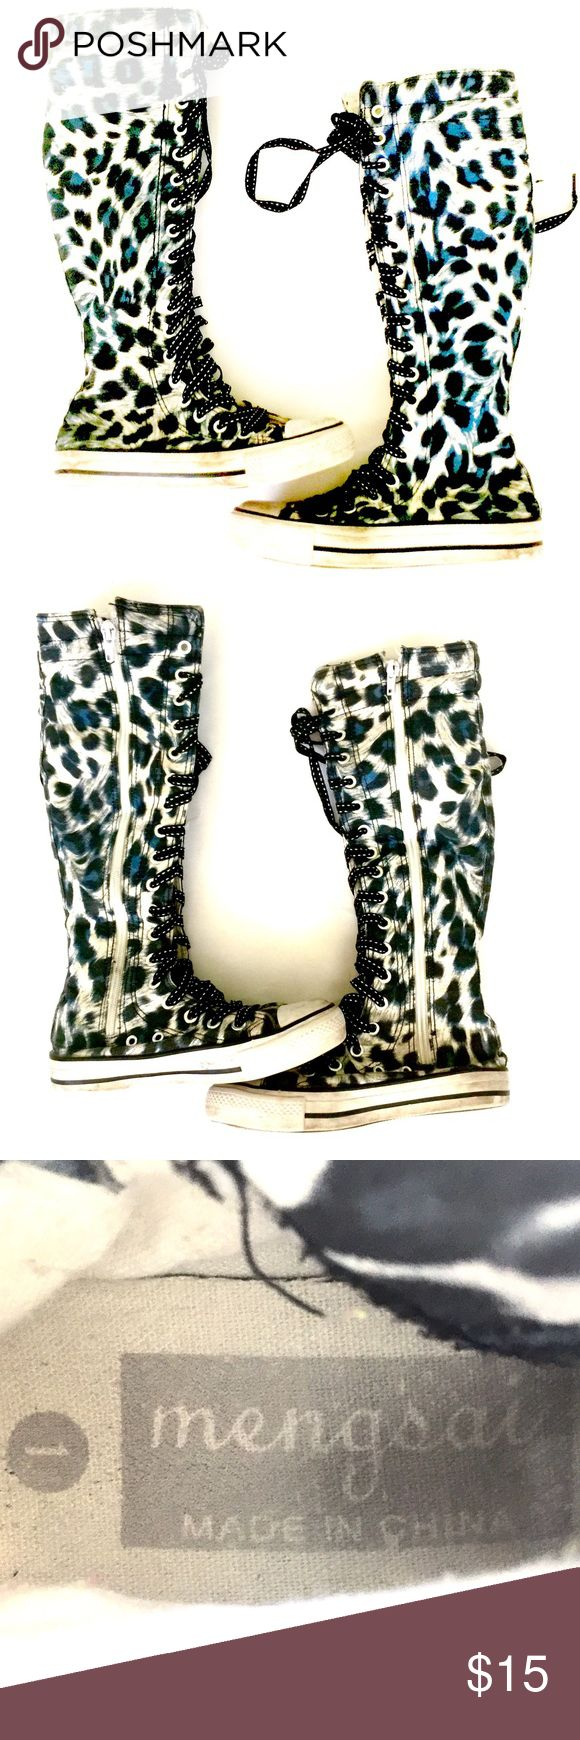 Mengsai Leopard Sneaker Boot Hi-Tops size 1 These leopard sneaker boots tie up AND zip up. The are rock star quality and feature blue accents. Mengsai Shoes Boots